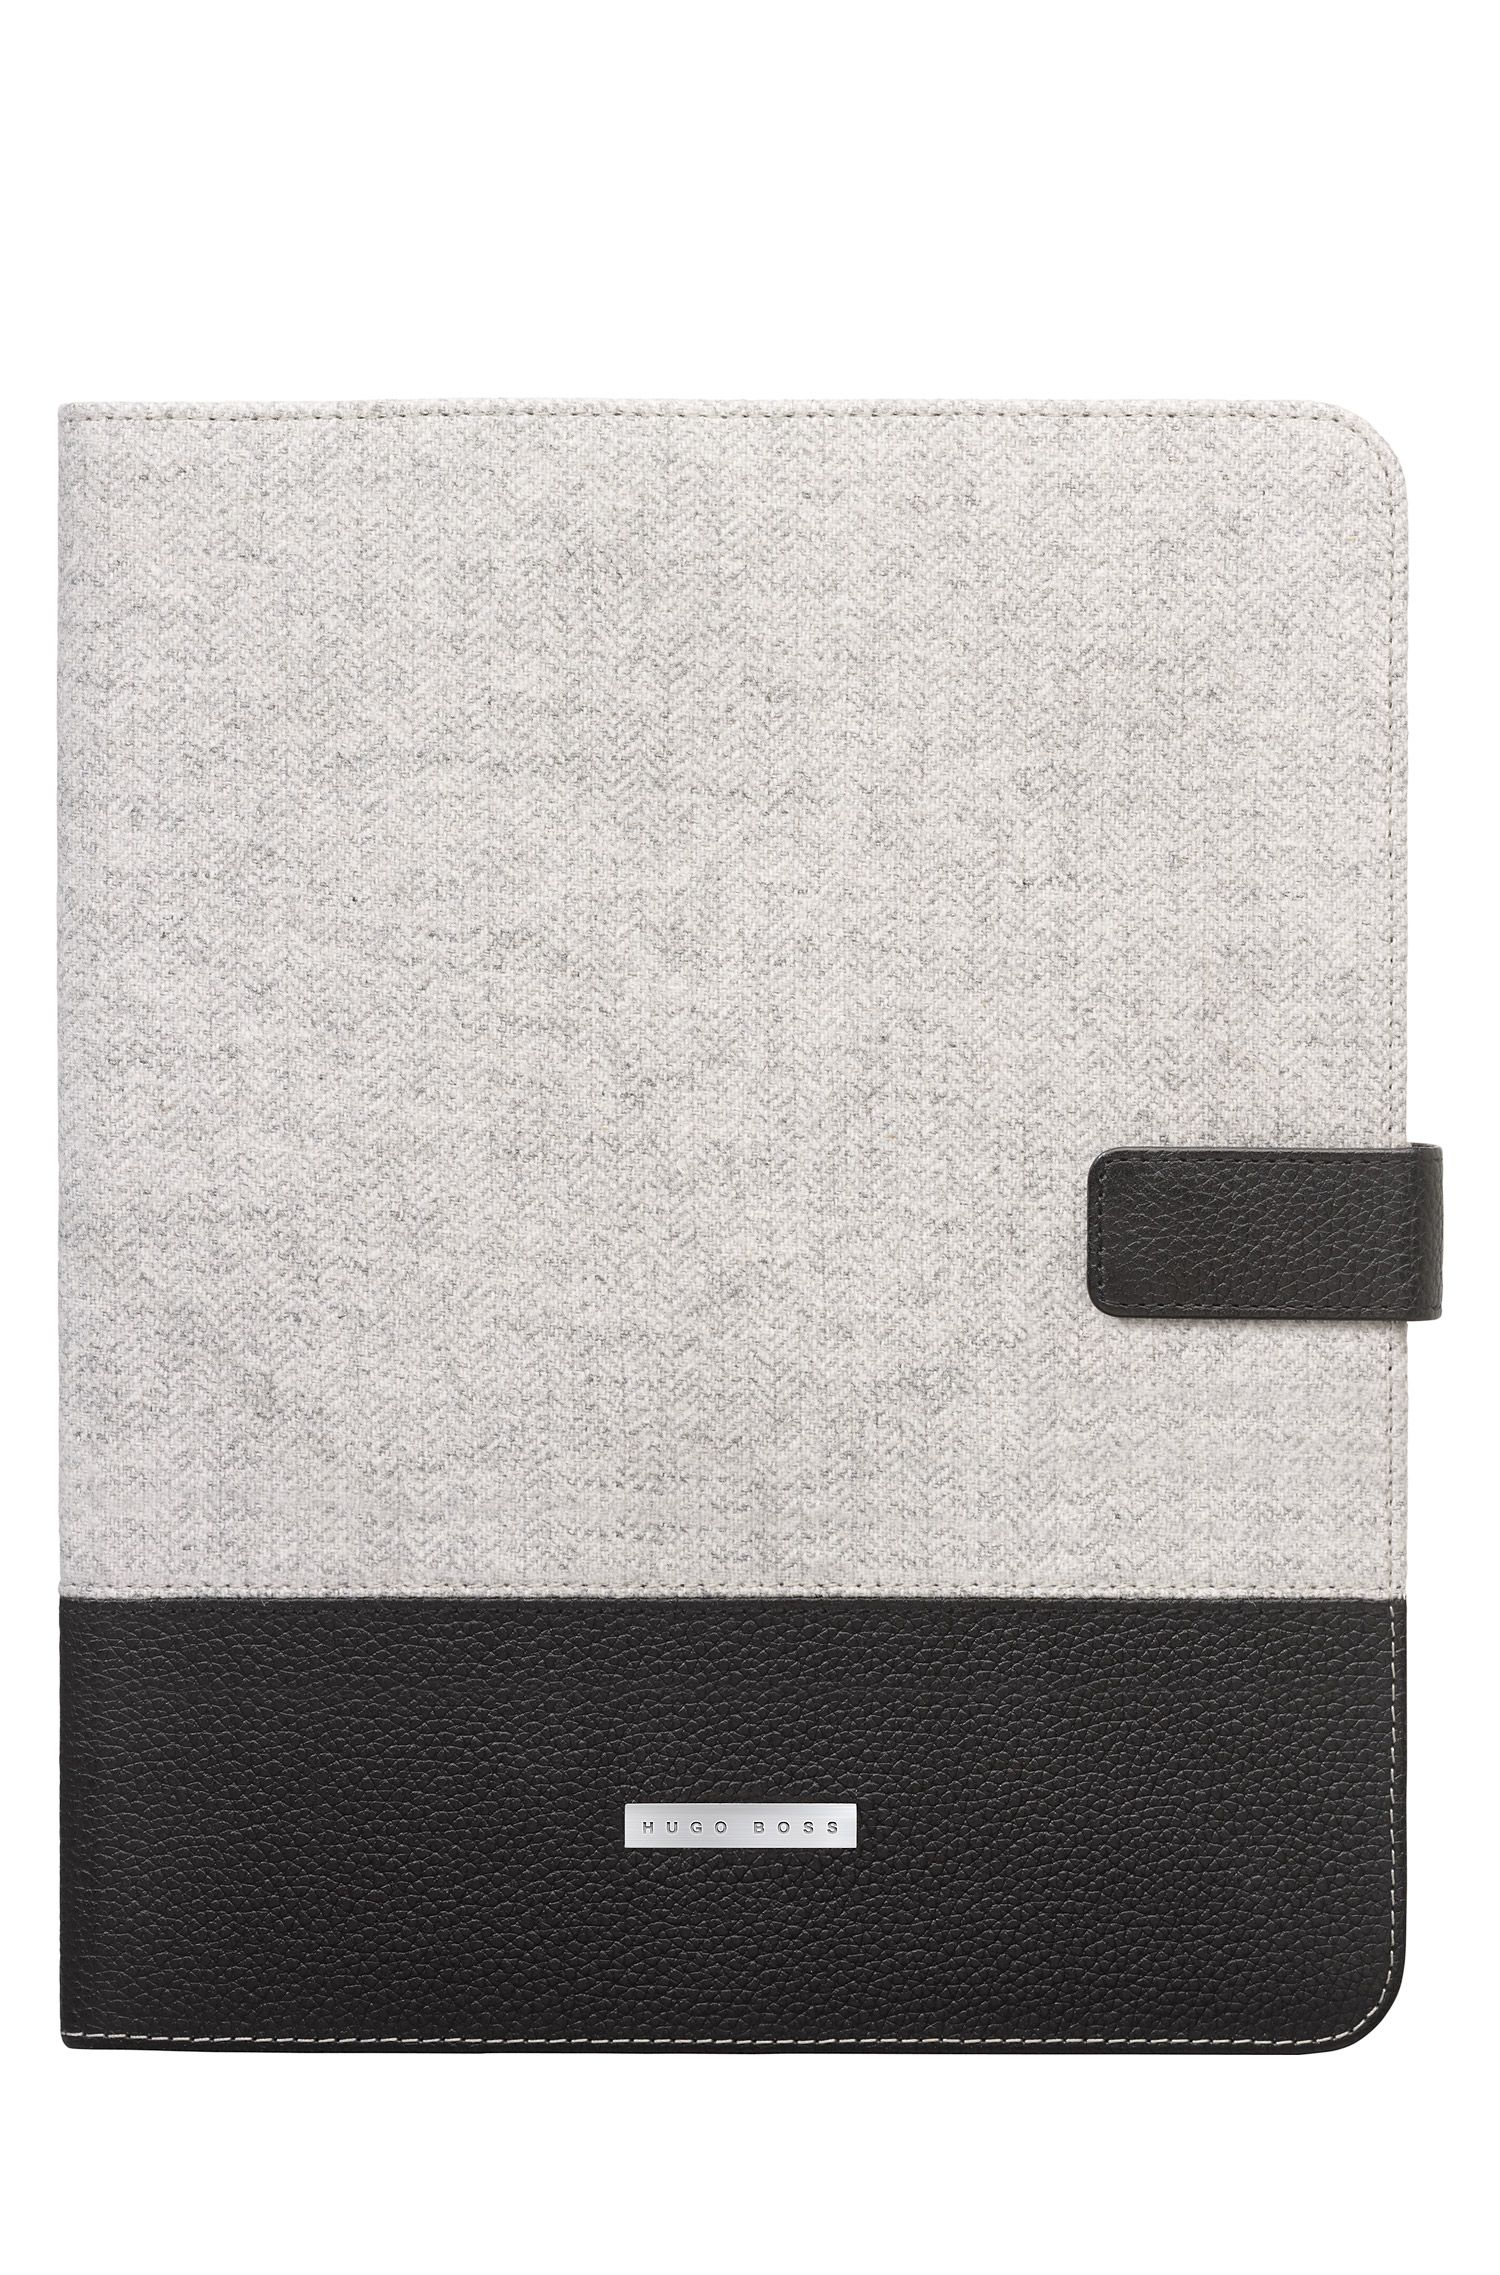 Housse universelle pour tablette, IVERNESS, Gris